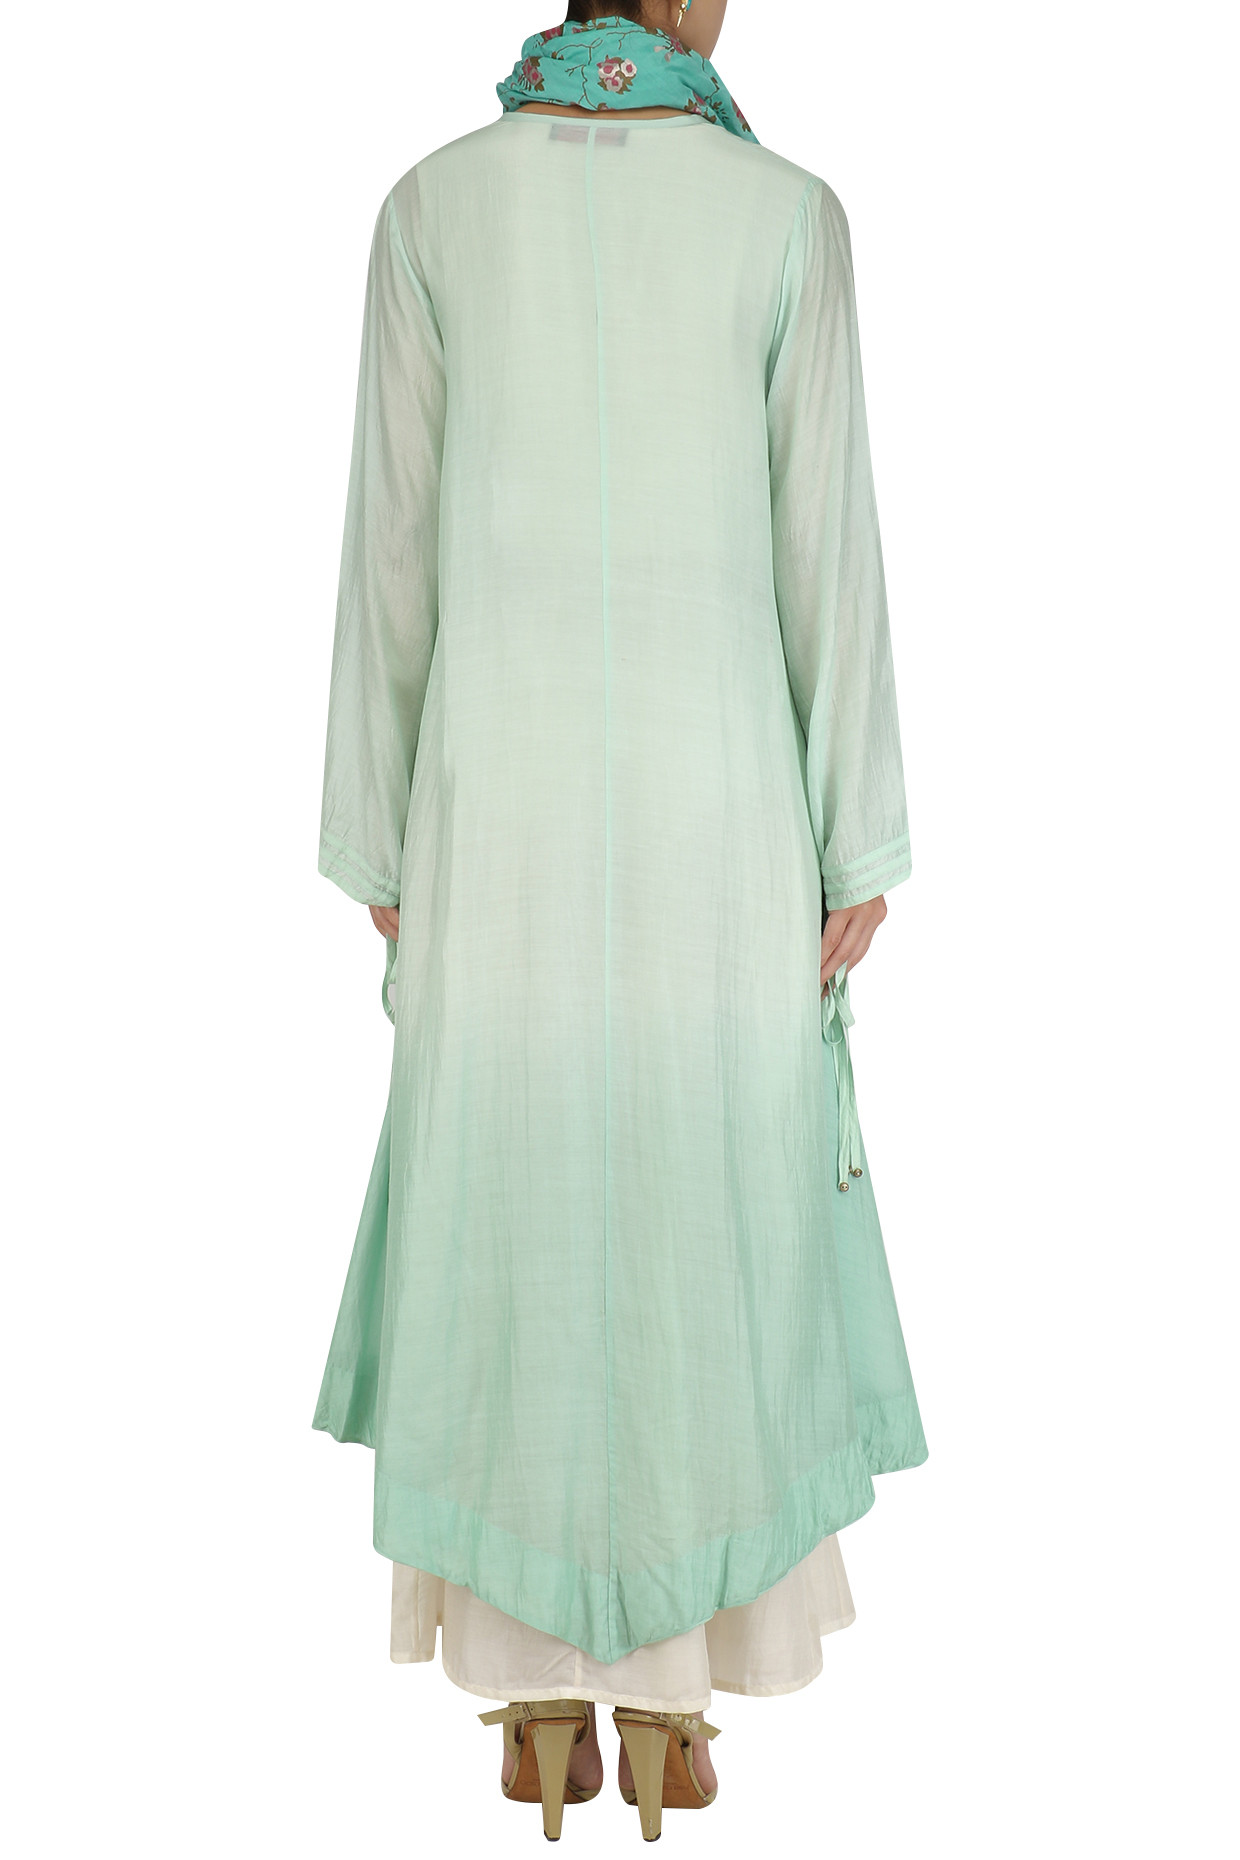 Mint Green Ombre Asymmetrical Tunic with Tassel Hanging Scarf by Pinnacle by Shruti Sancheti